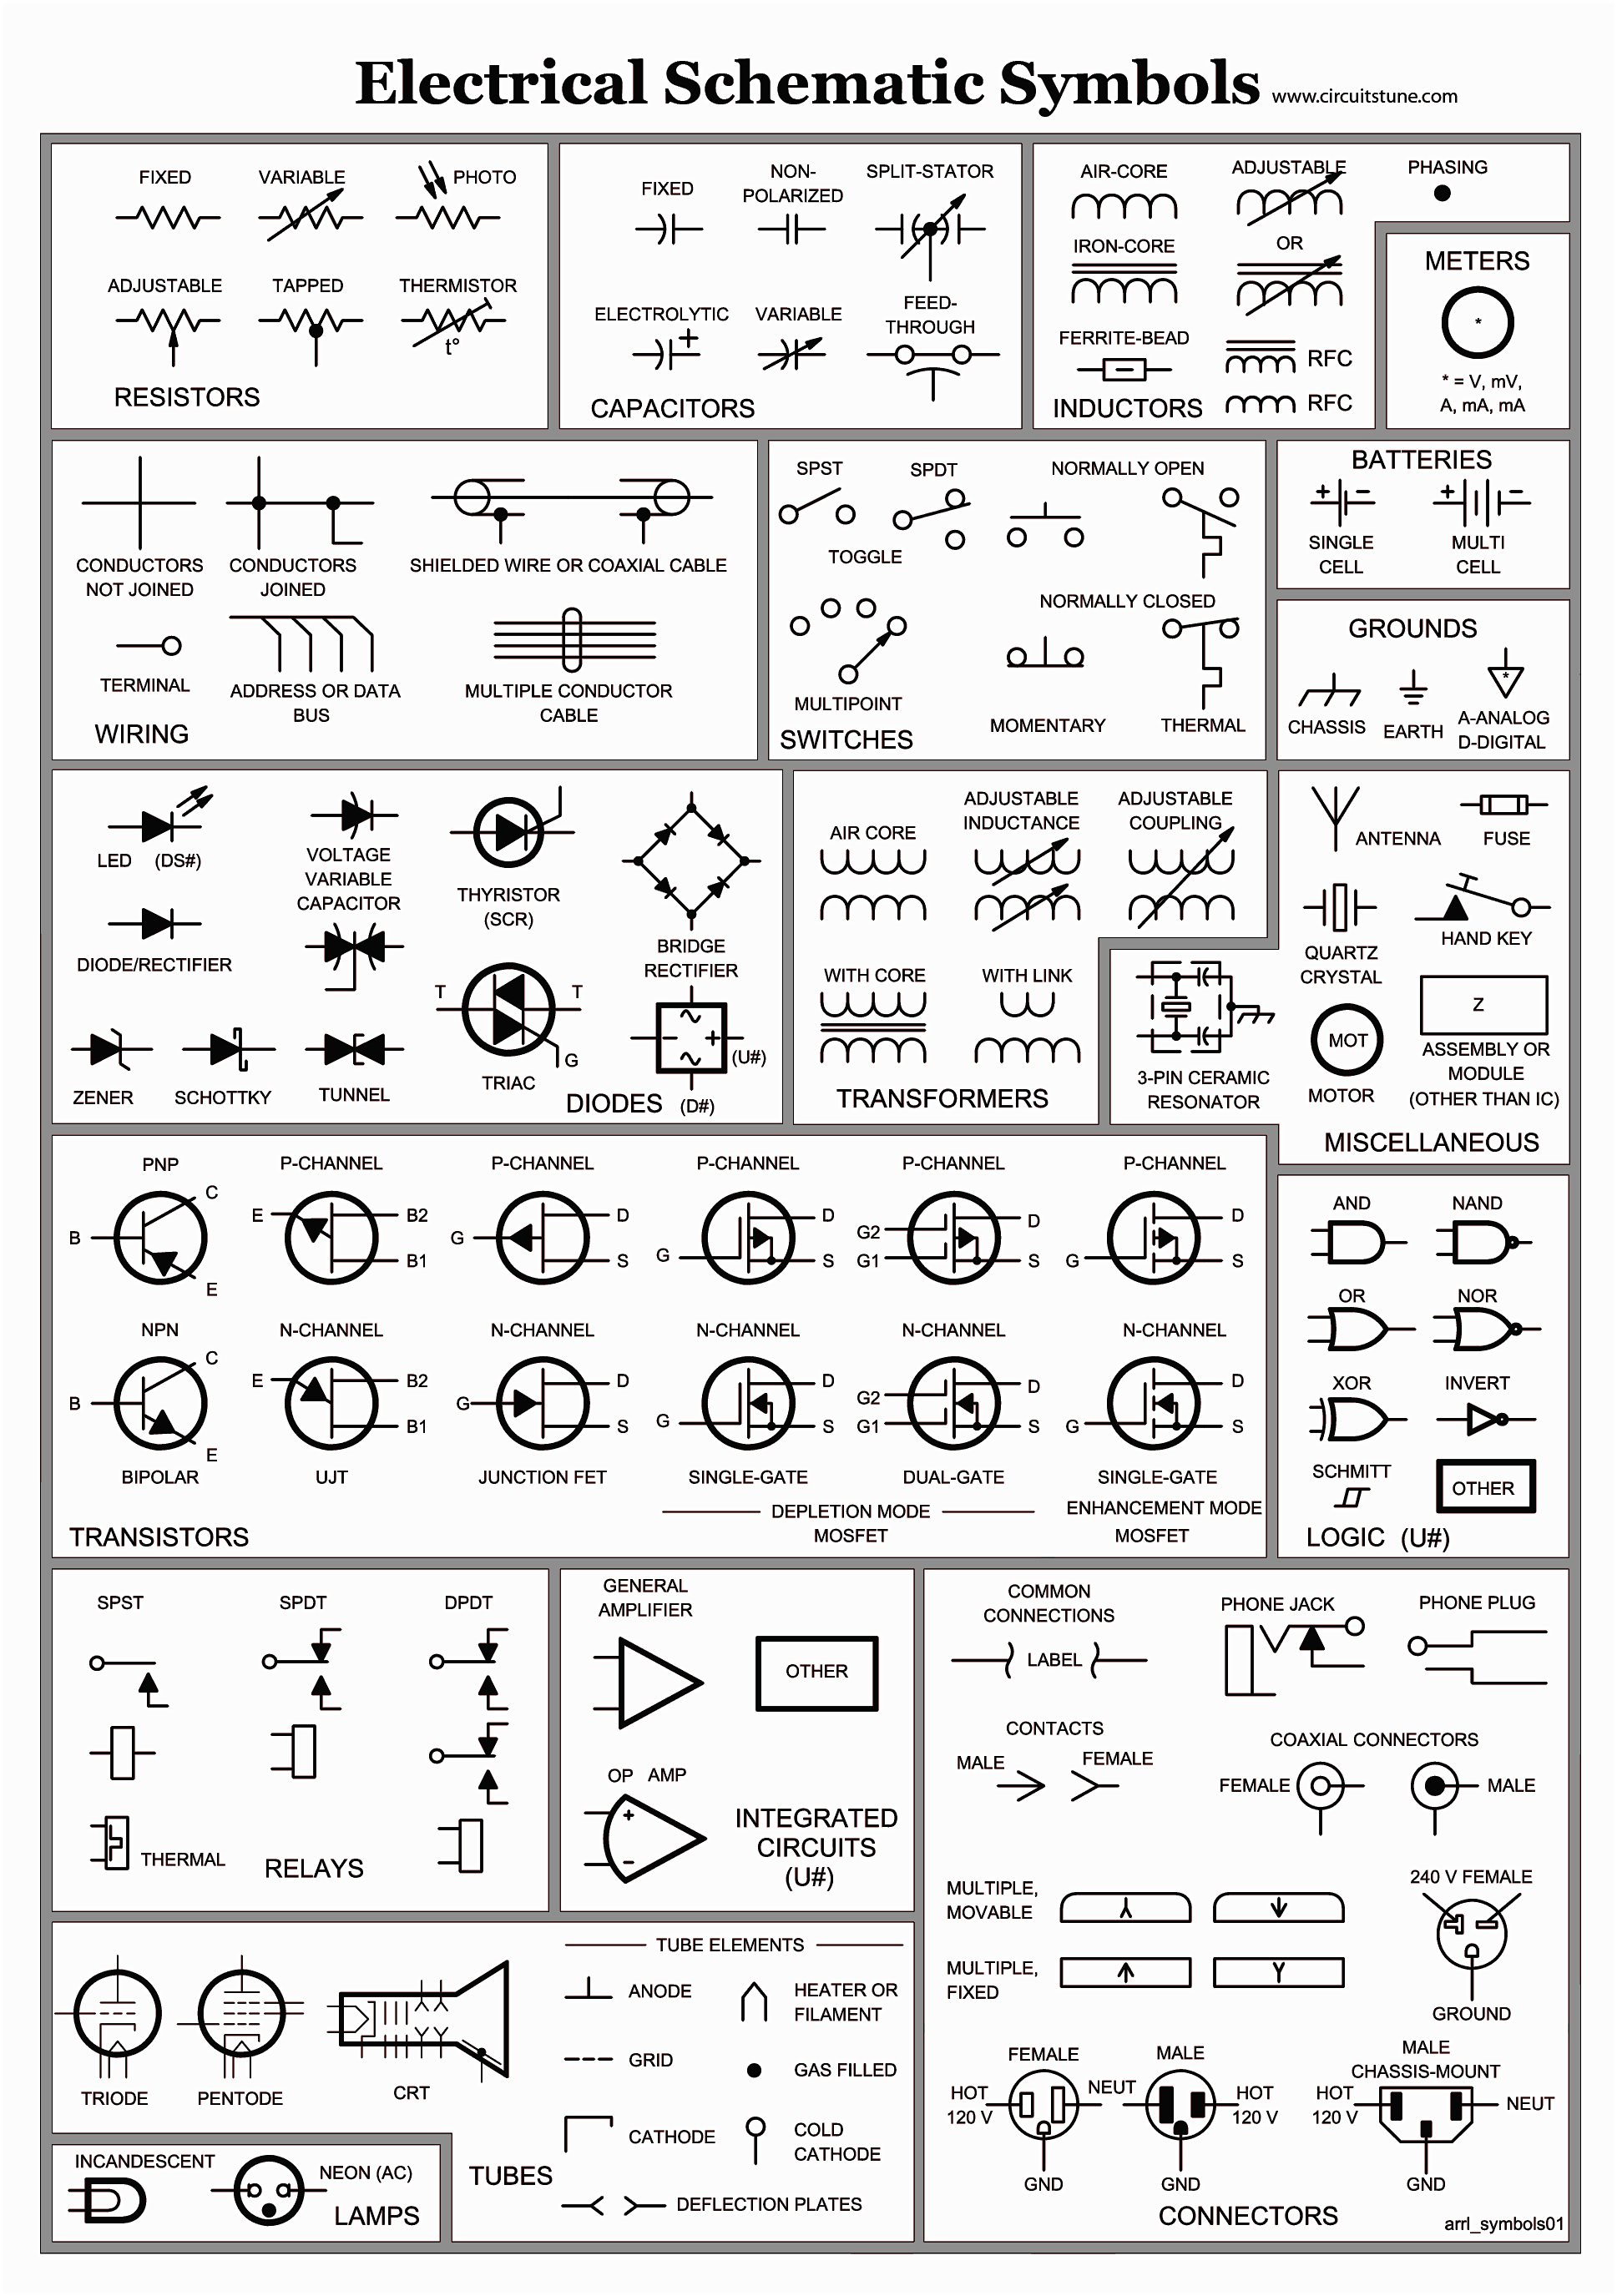 wiring diagram reading how to read electrical drawings pdf for rh pinterest com building wiring symbols pdf building wiring symbols pdf [ 1937 x 2751 Pixel ]